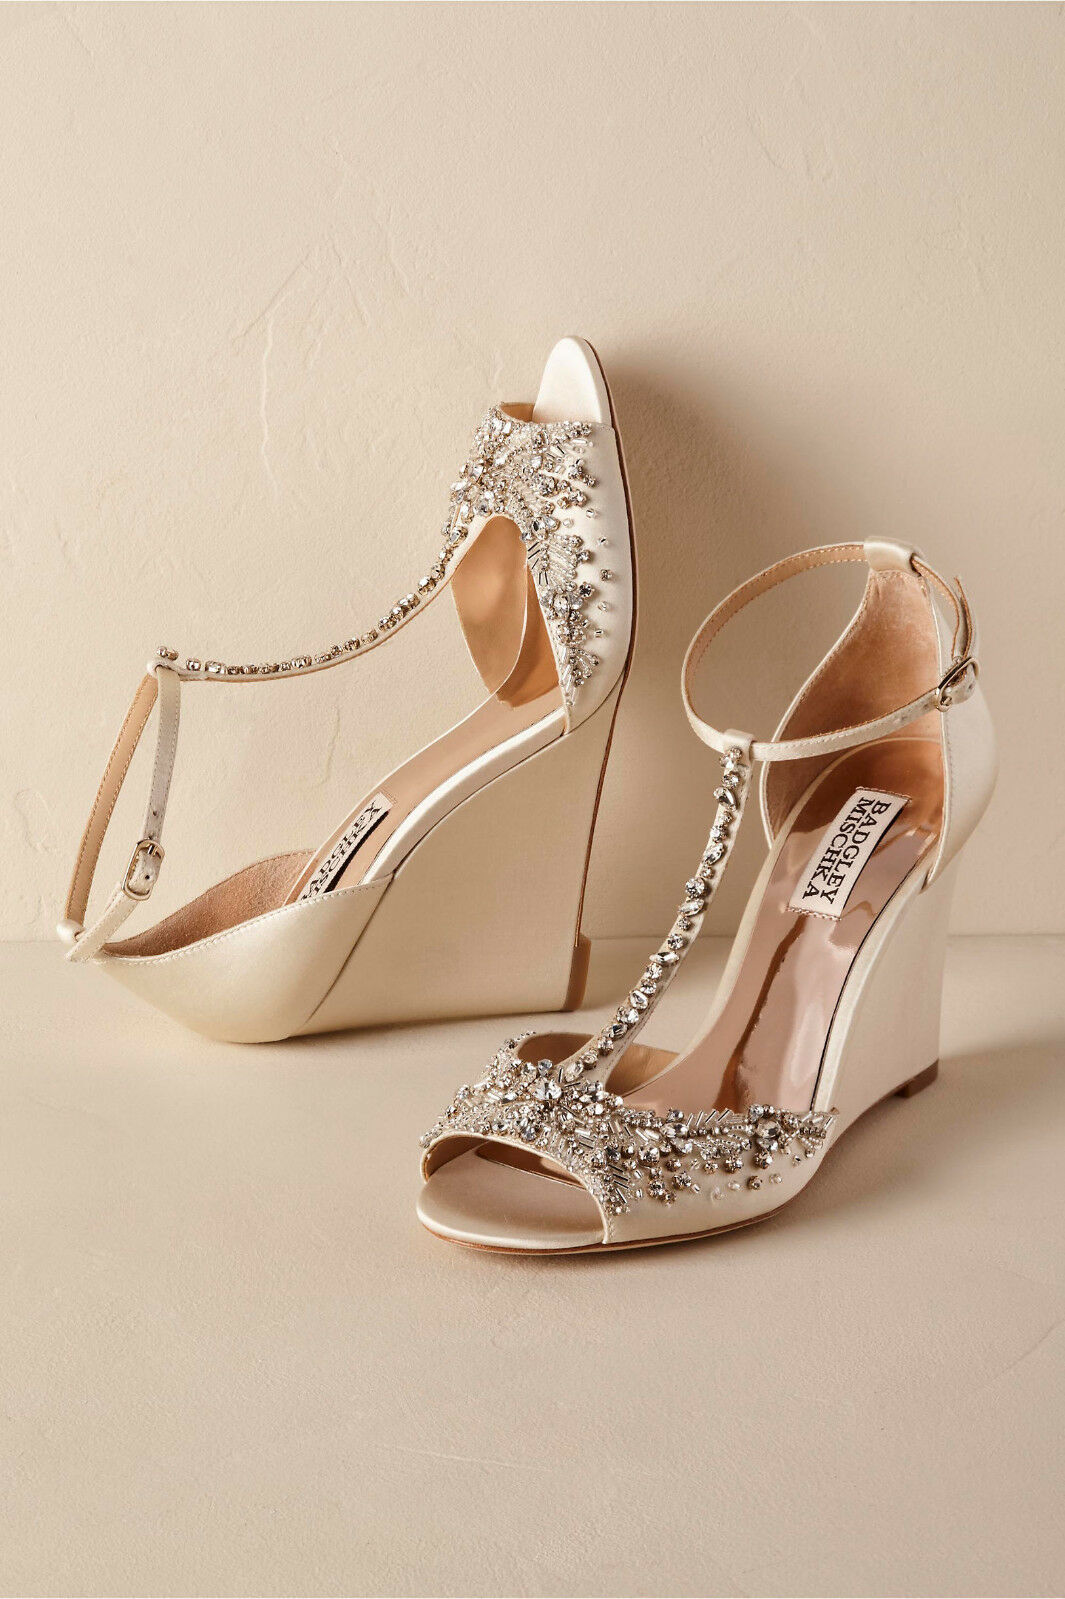 BADGLEY MISCKA 7.5 WEDGE RHINESTONE SATIN SATIN SATIN LEADER IVORY SARA BHLDN SOLD  245  butikshantering